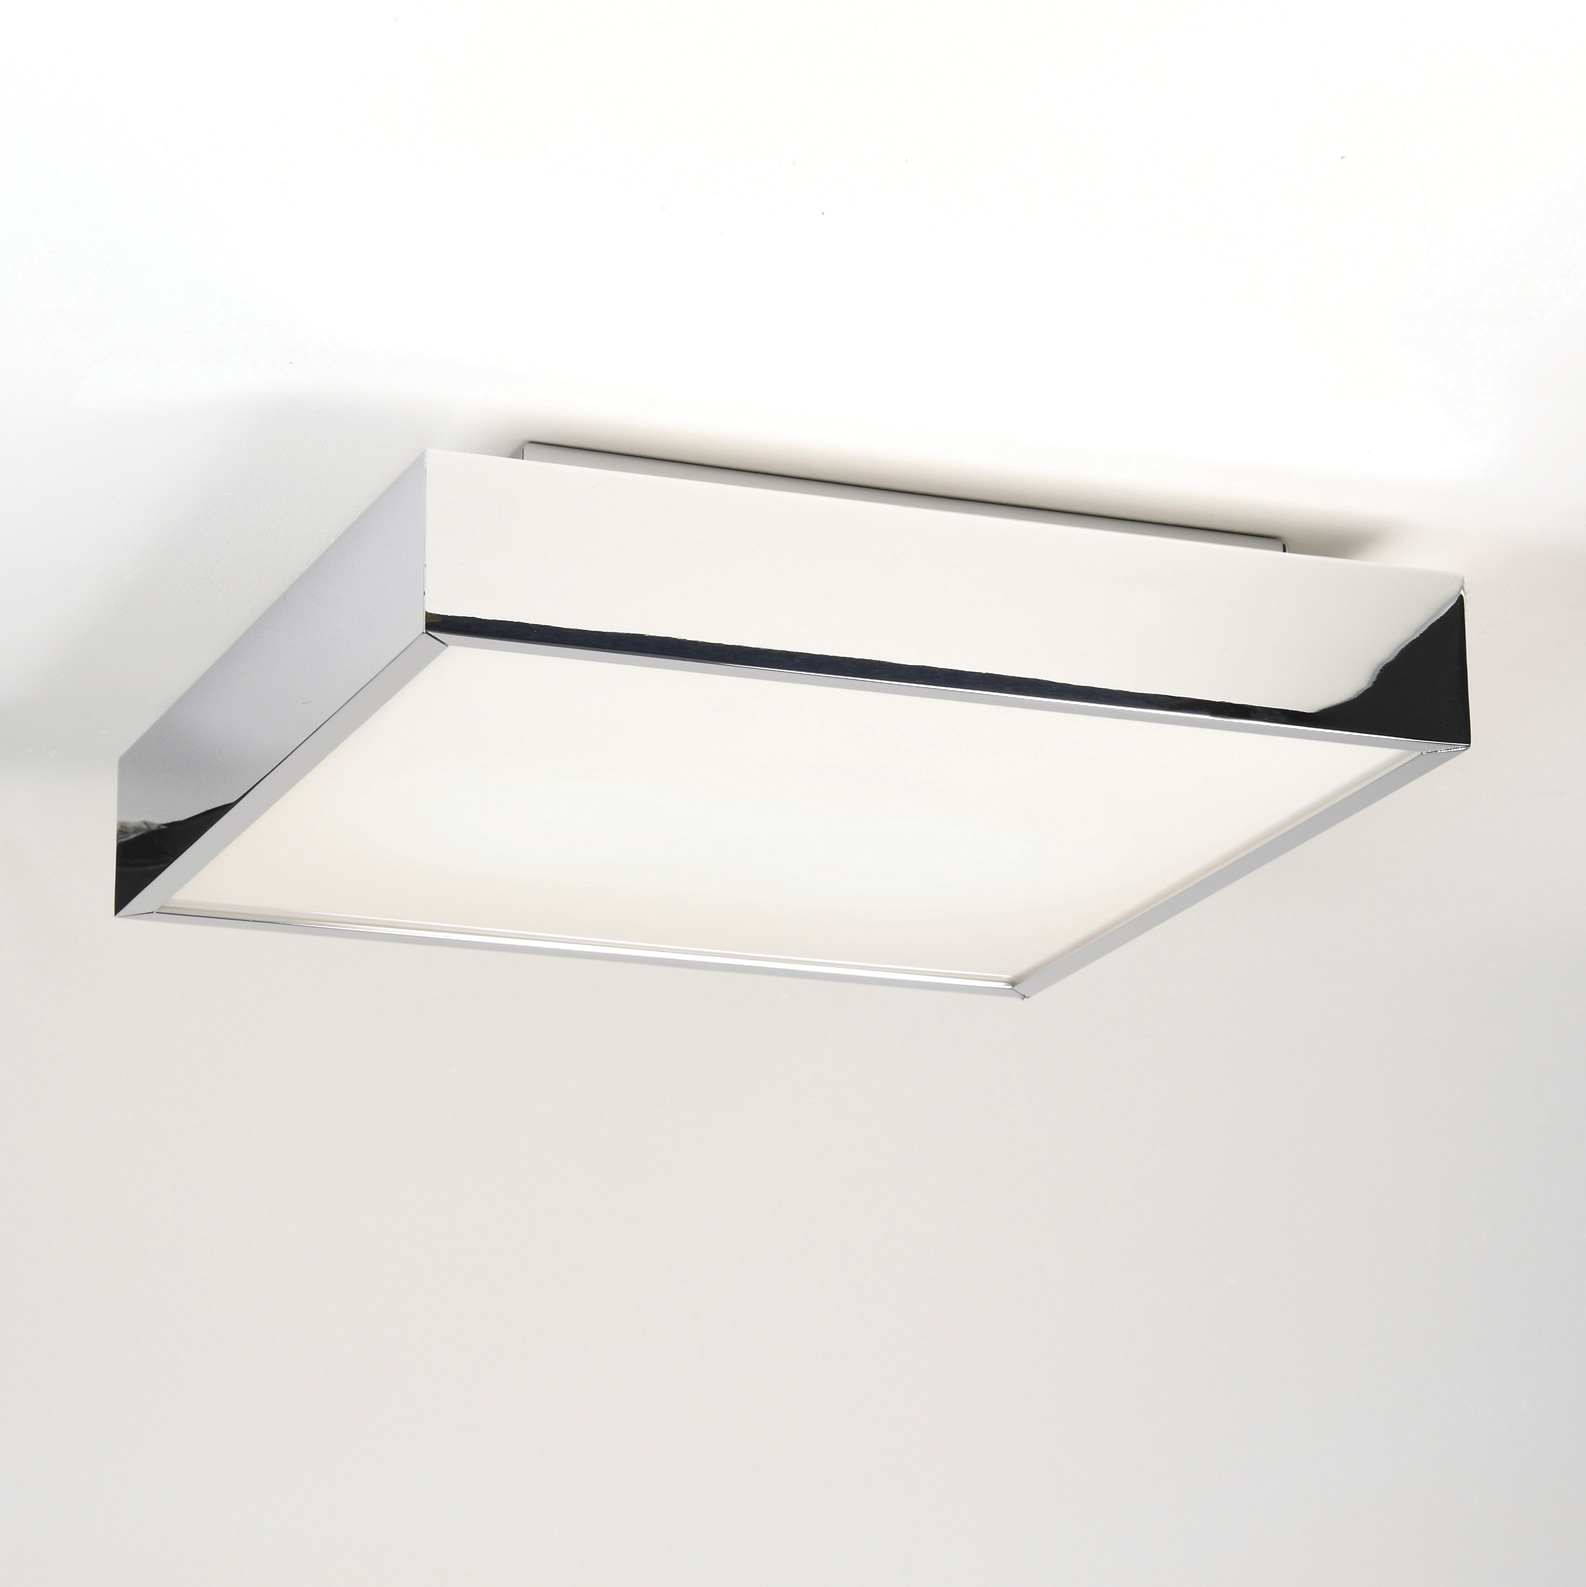 Led Bathroom Ceiling Lights - Astro taketa 7159 led square bathroom ceiling light 17 7w polished astro taketa 7159 led square